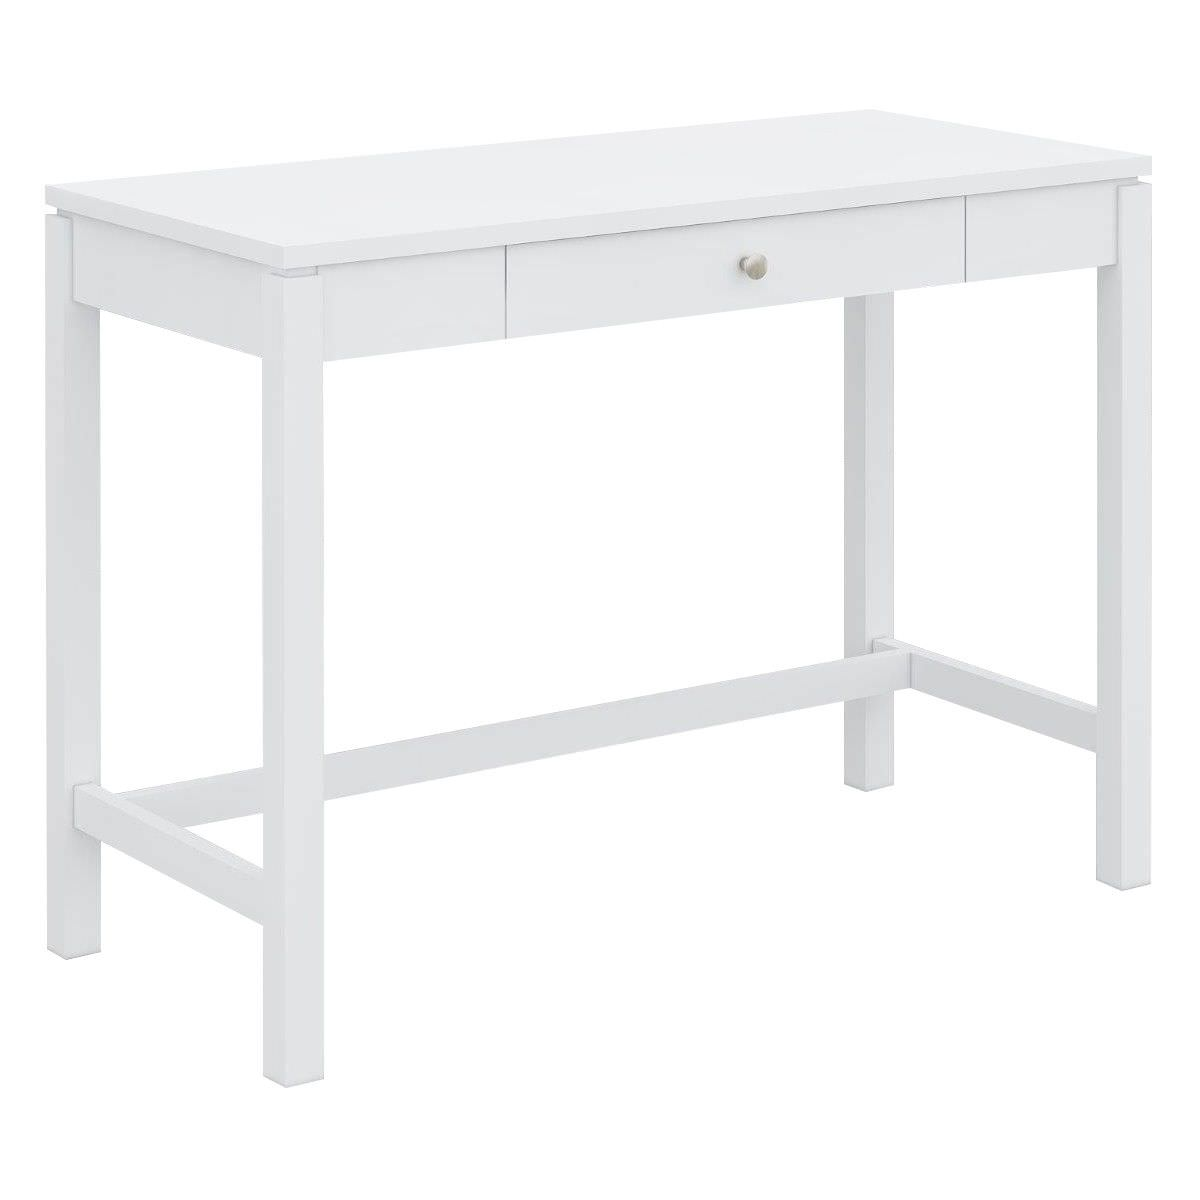 Braque Solid Rubberwood Timber Writing Desk, 103cm, White